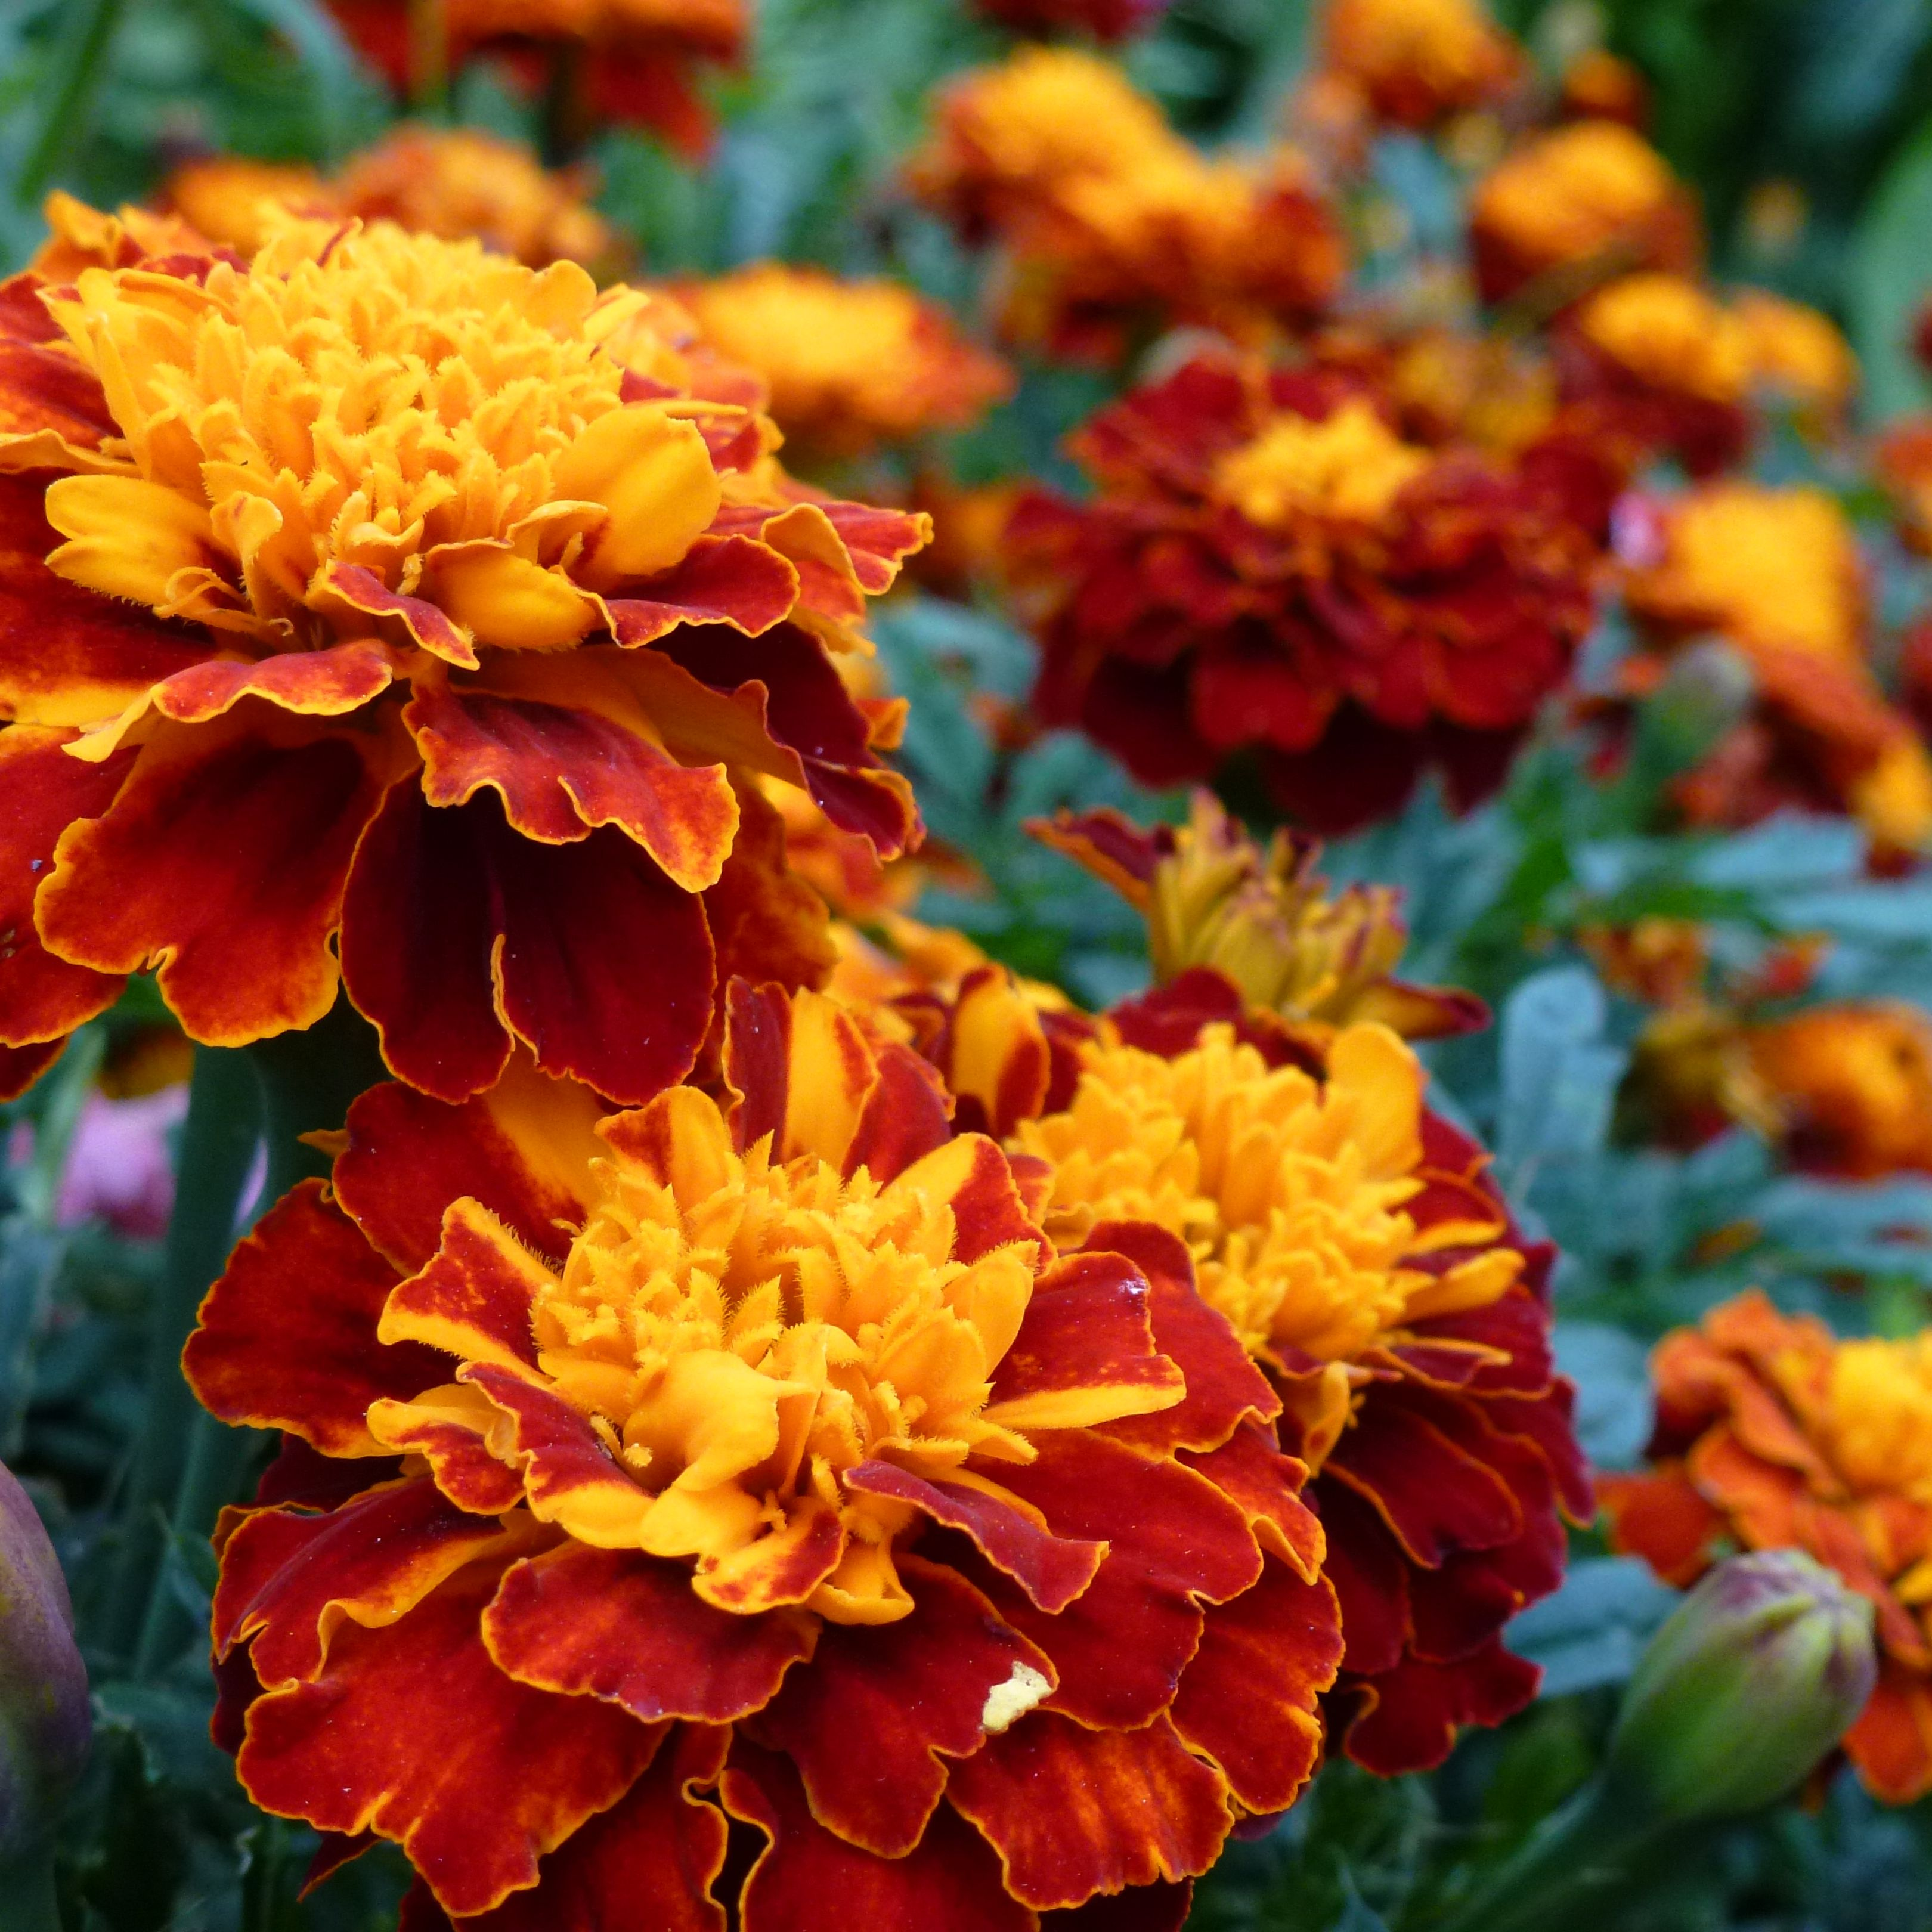 List Of Best Fall Flowers To Plant For Autumn Colors